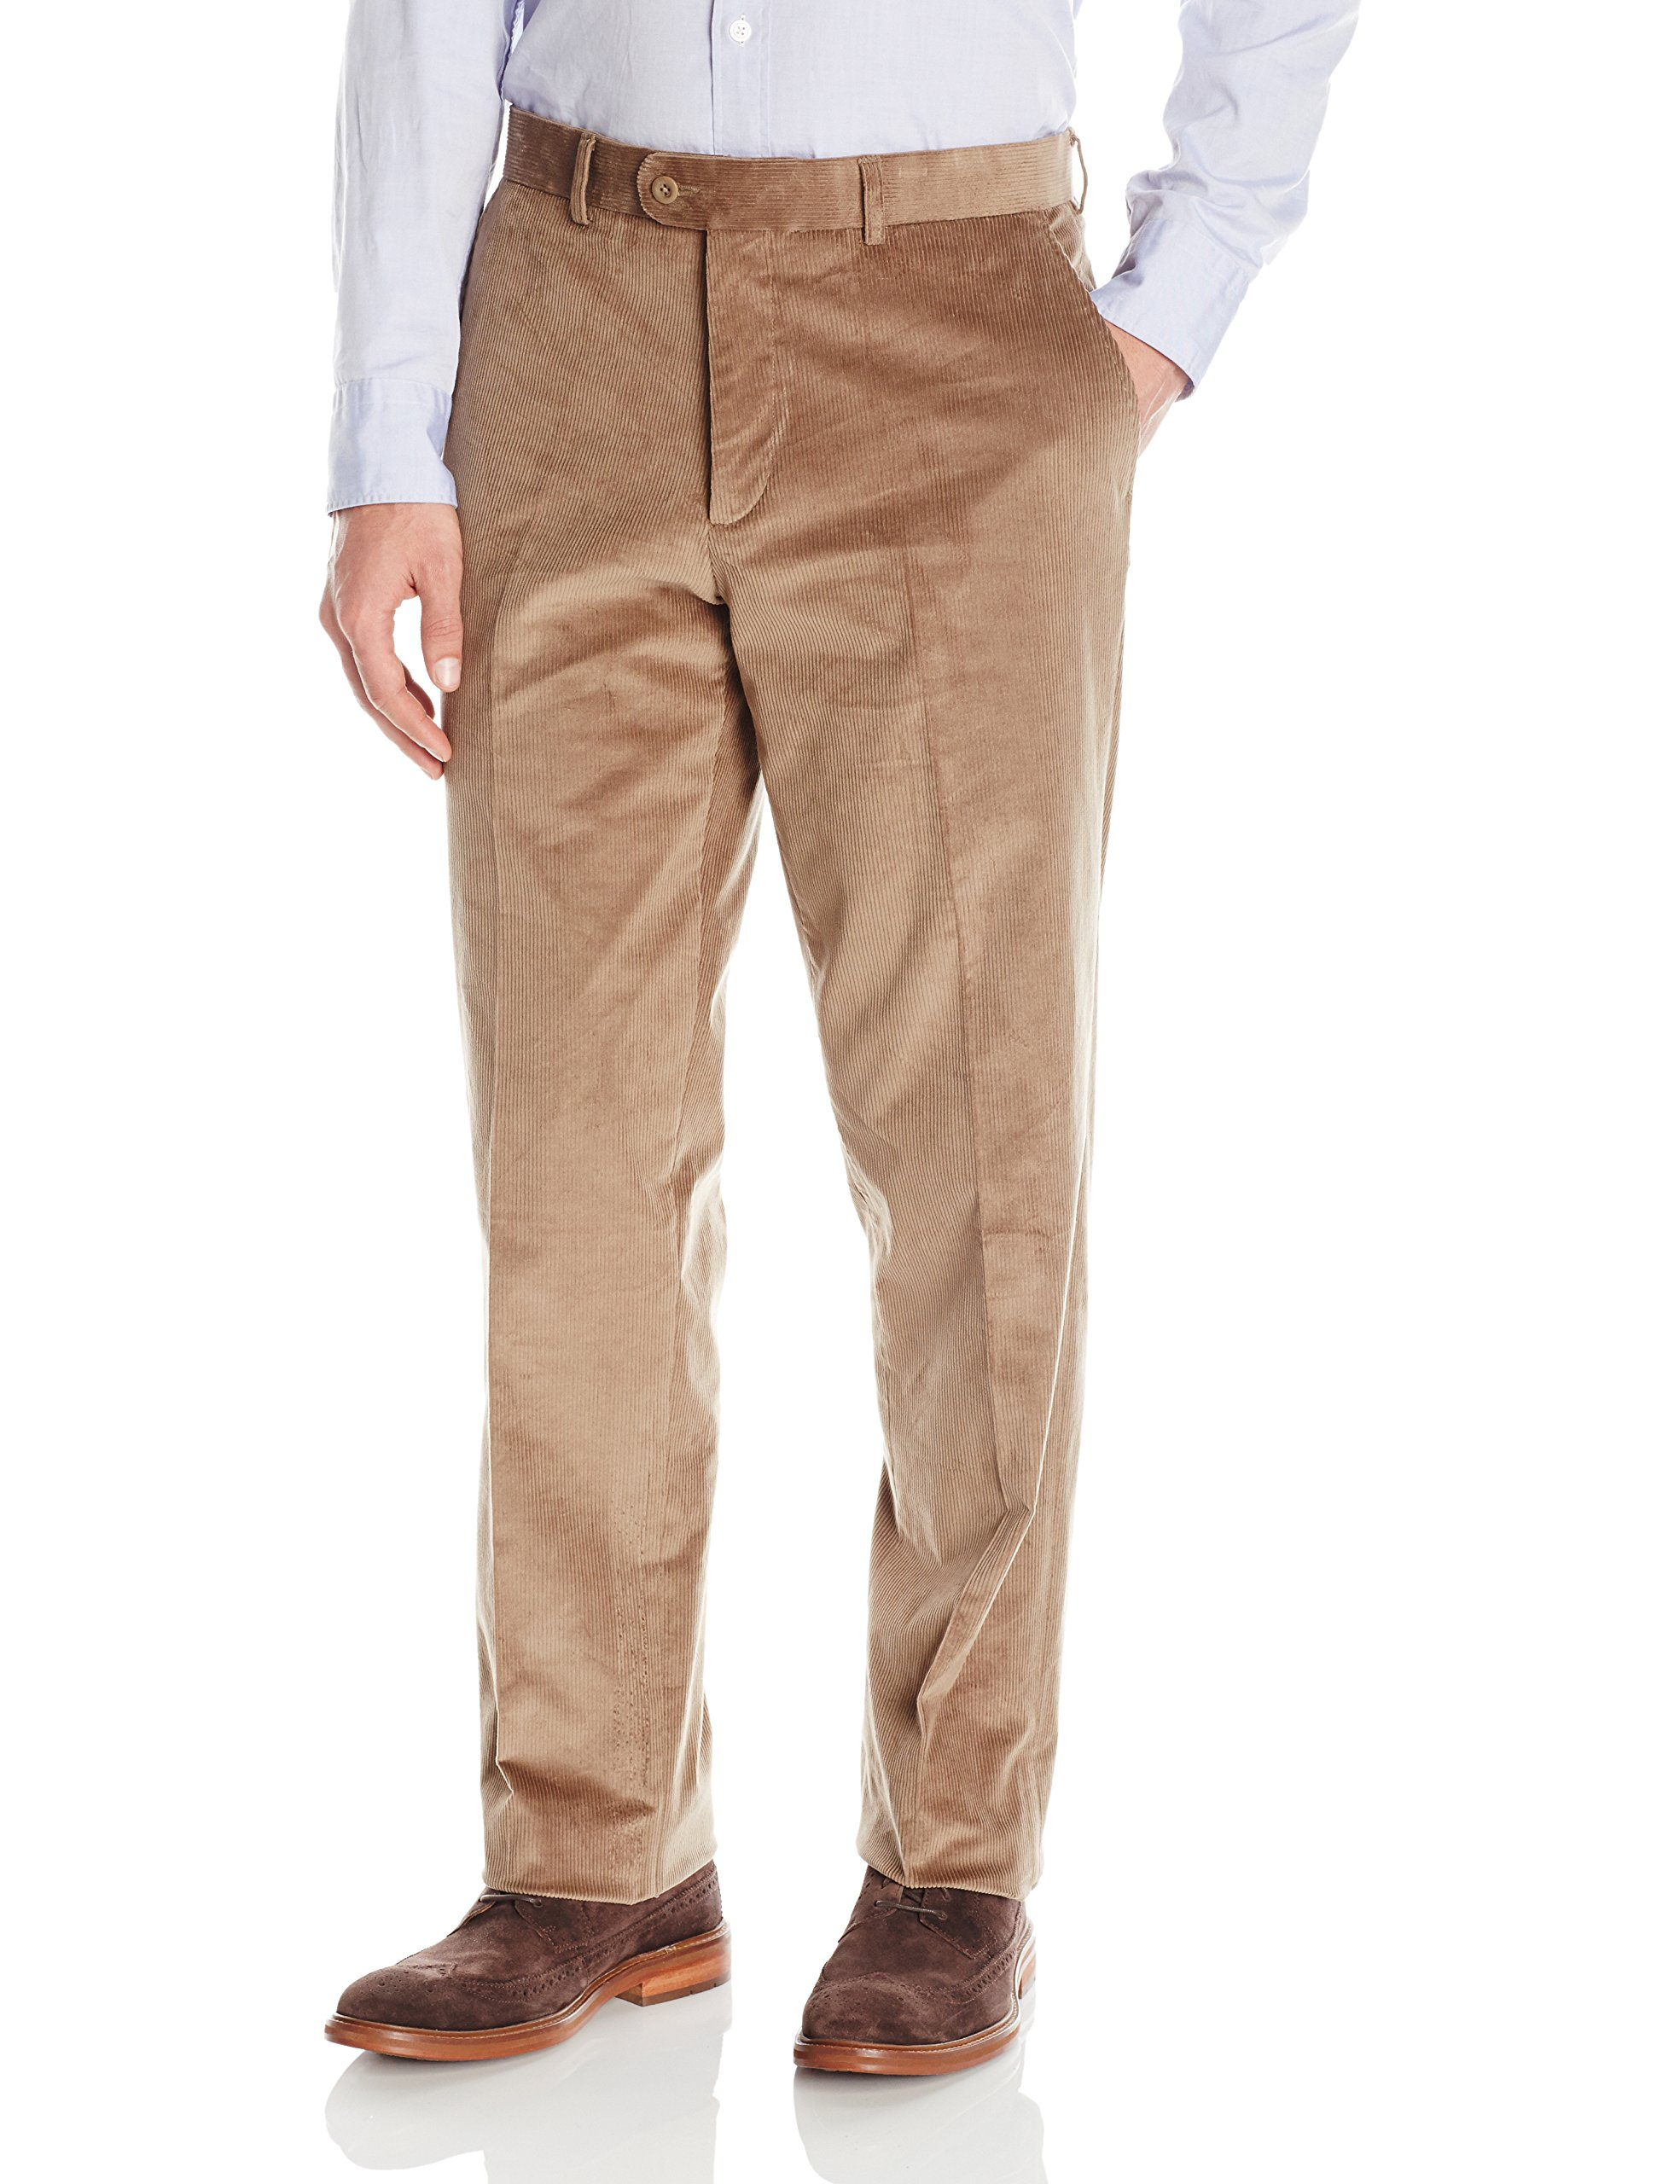 Linea Naturale Men's Flat Front Lightly Washed Stretch Cord Trouser, Tan, 33W by Linea Naturale